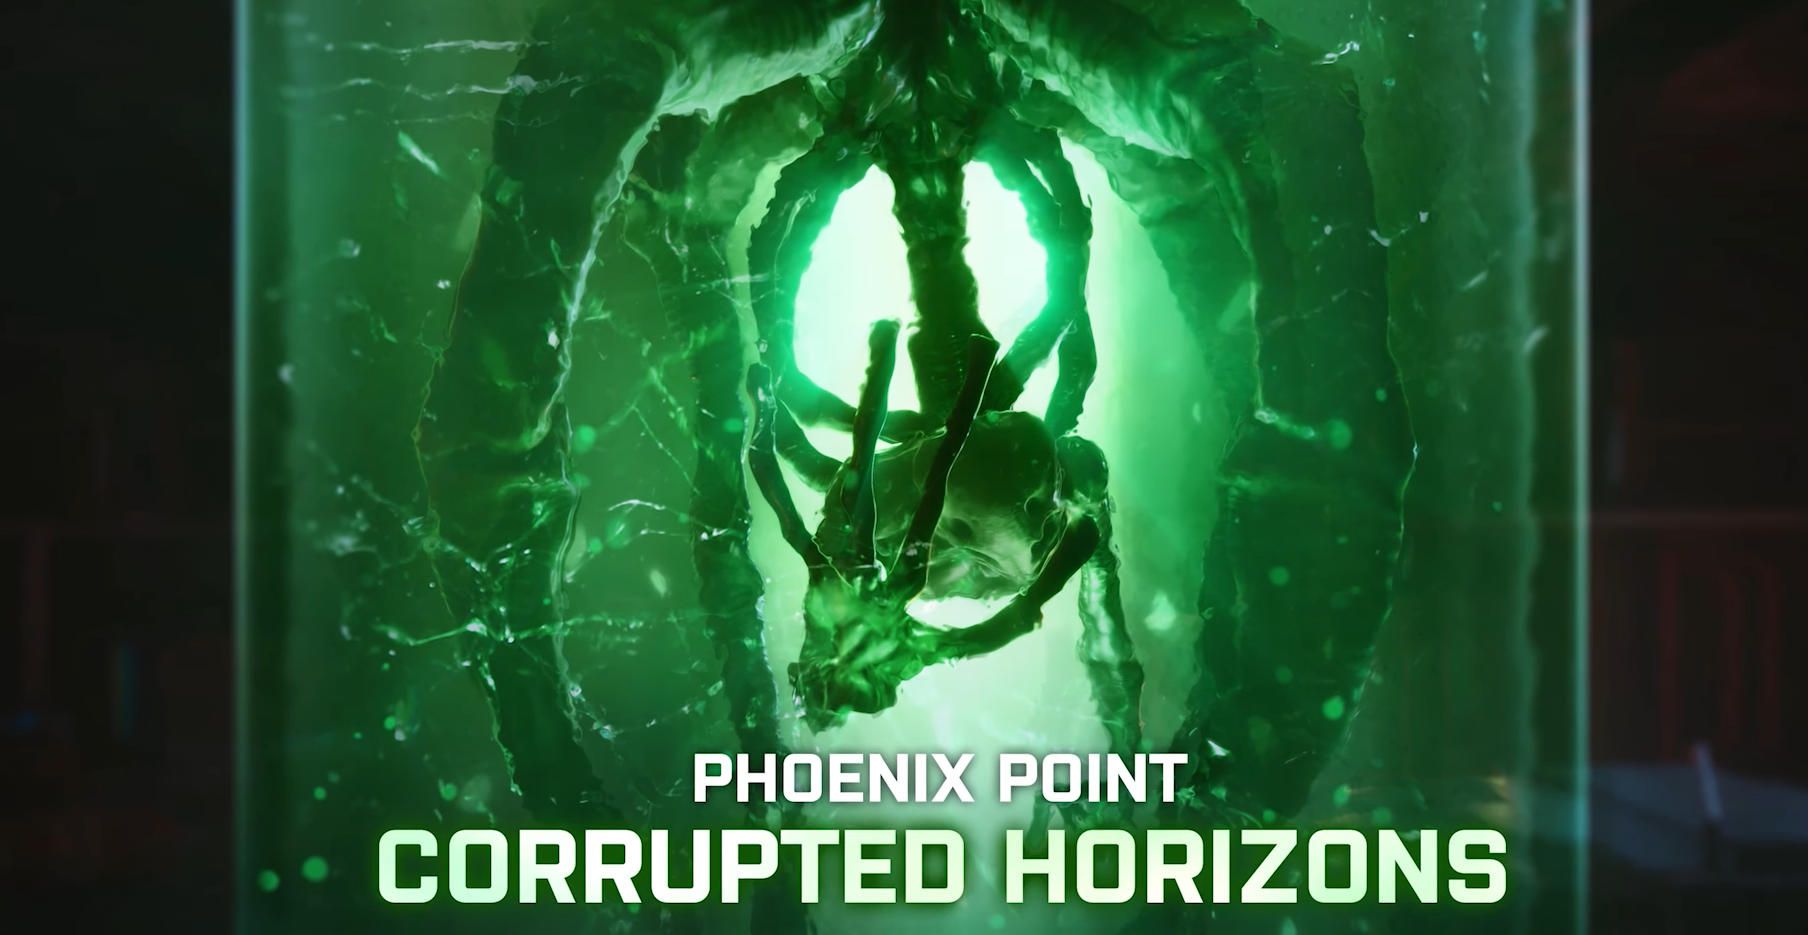 Phoenix Point - Corrupted Horizons DLC Free Download